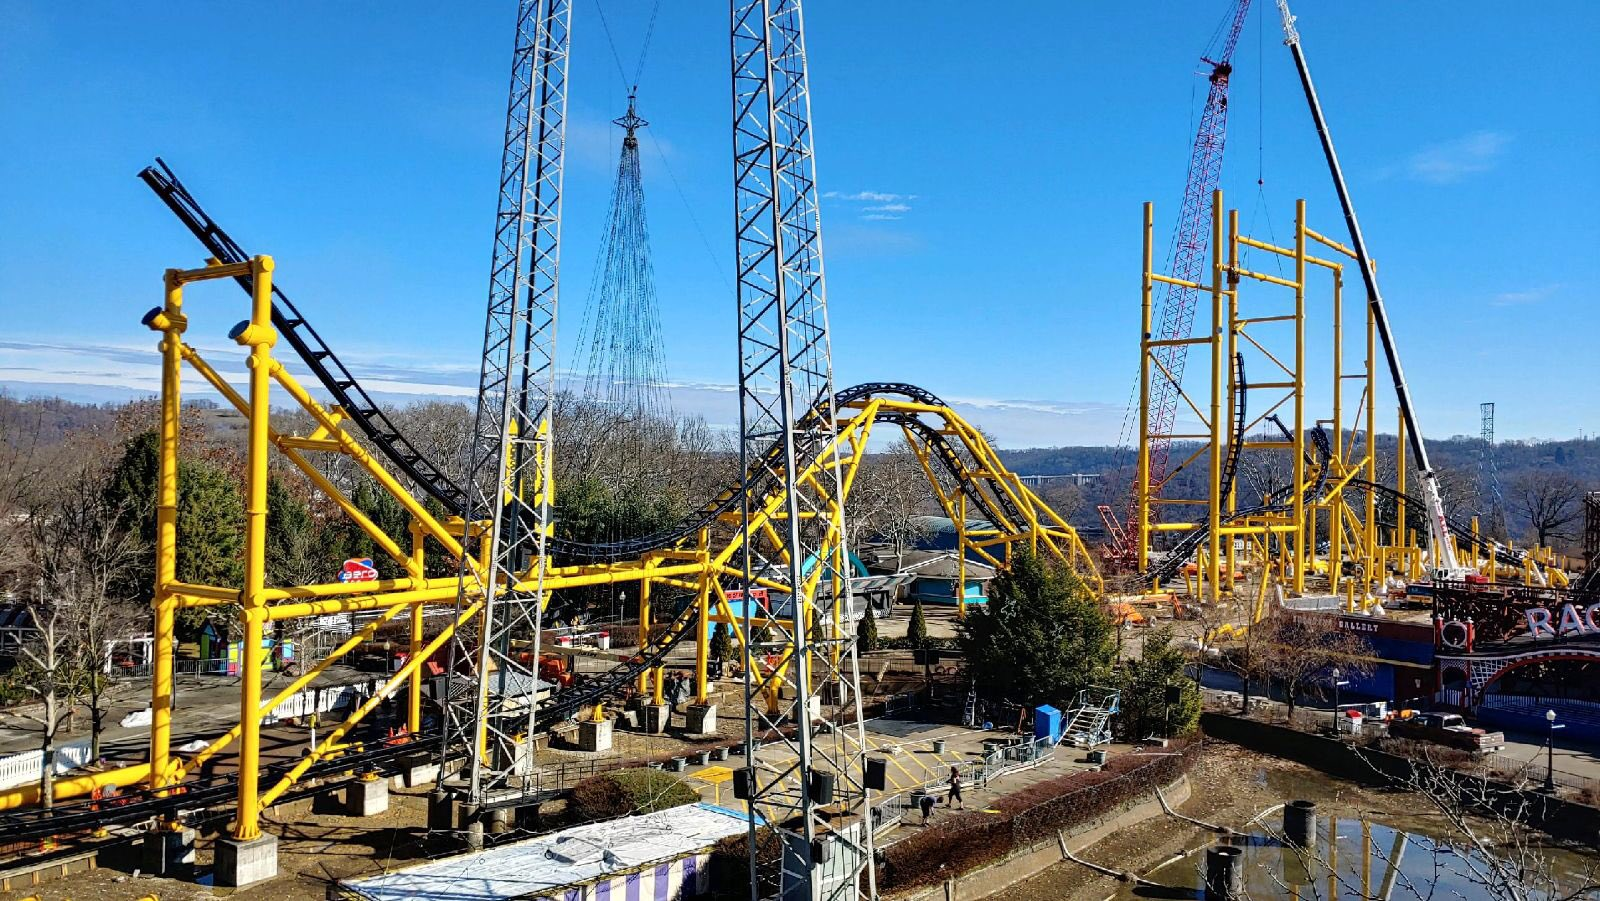 Newsplusnotes The Steel Curtain Is Looking Massive At Kennywood